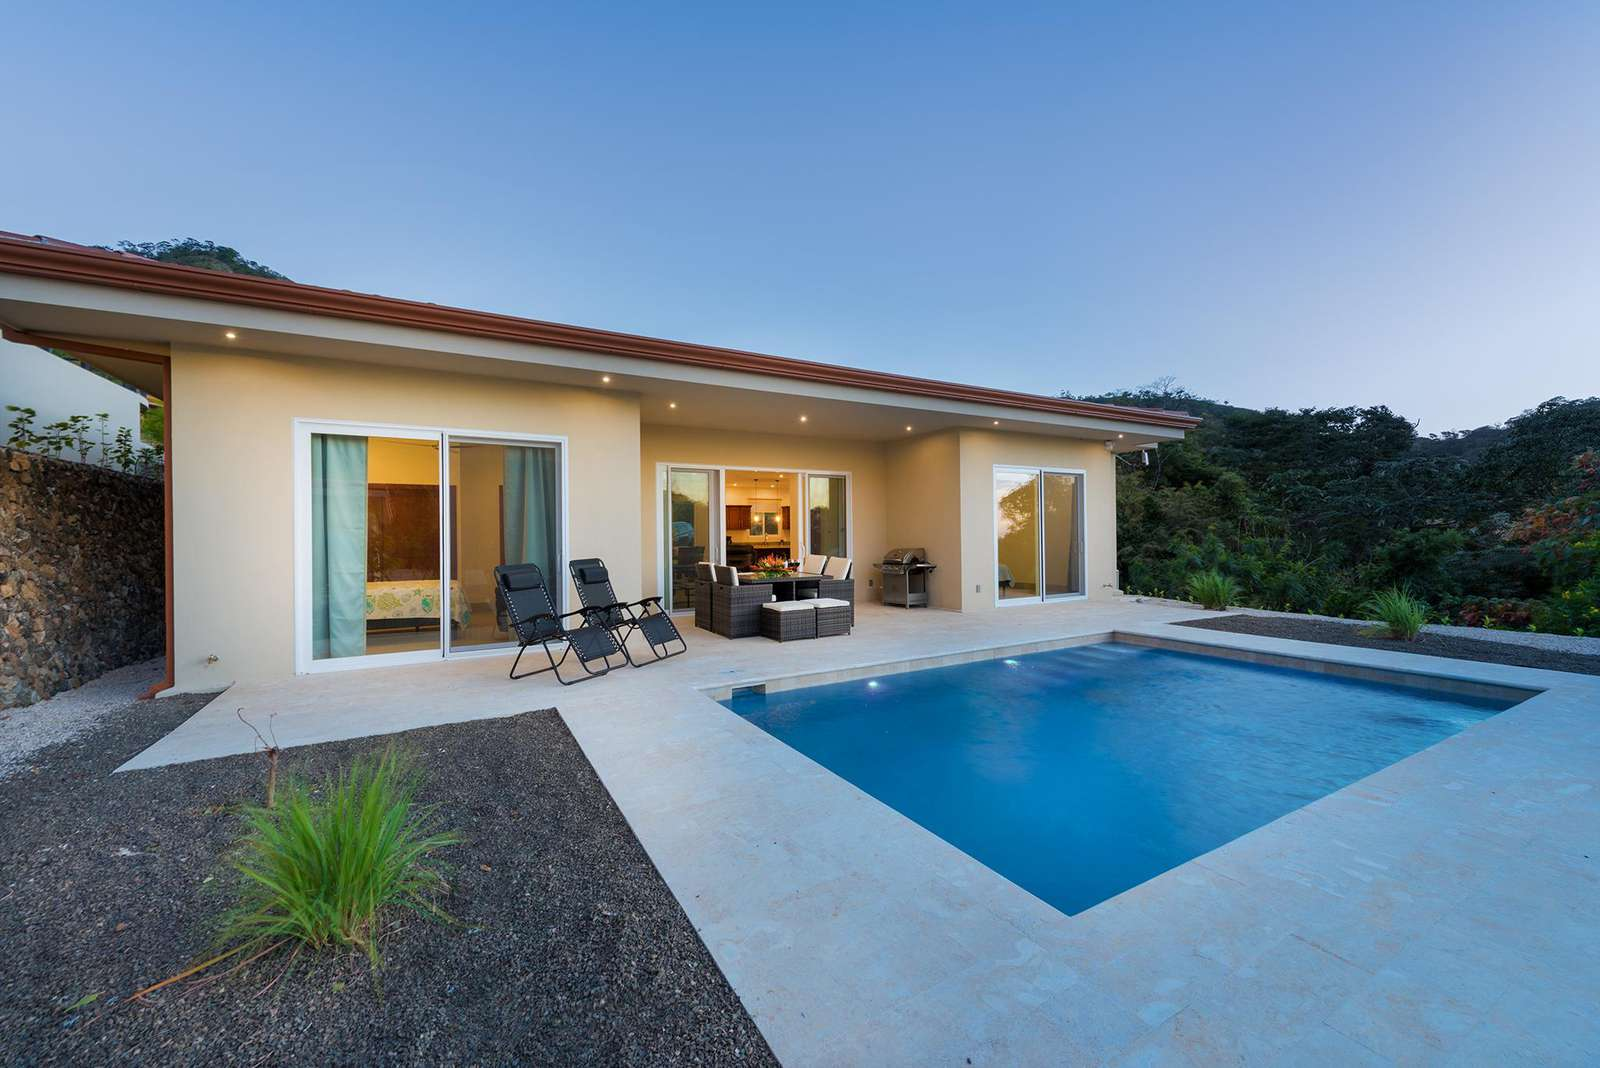 Dos rios 18, pool and view of private deck